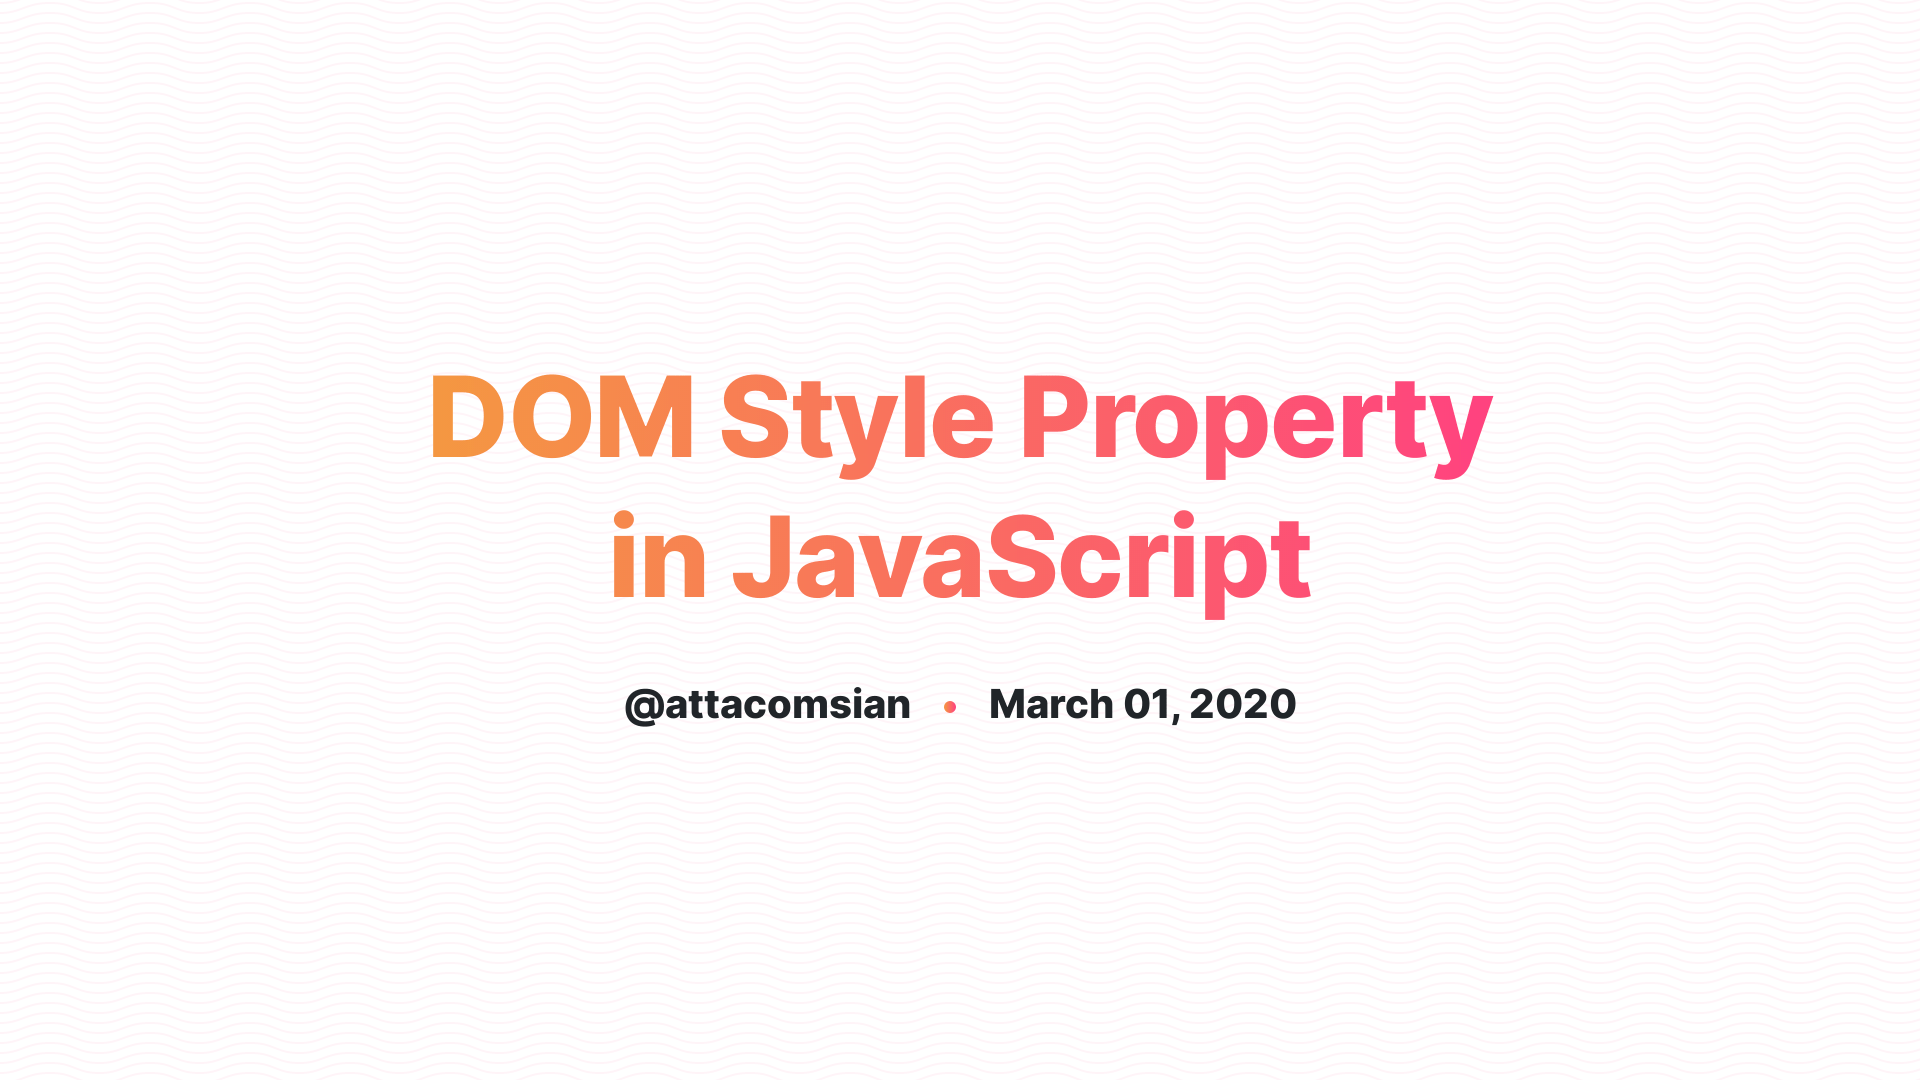 DOM Style Property in JavaScript